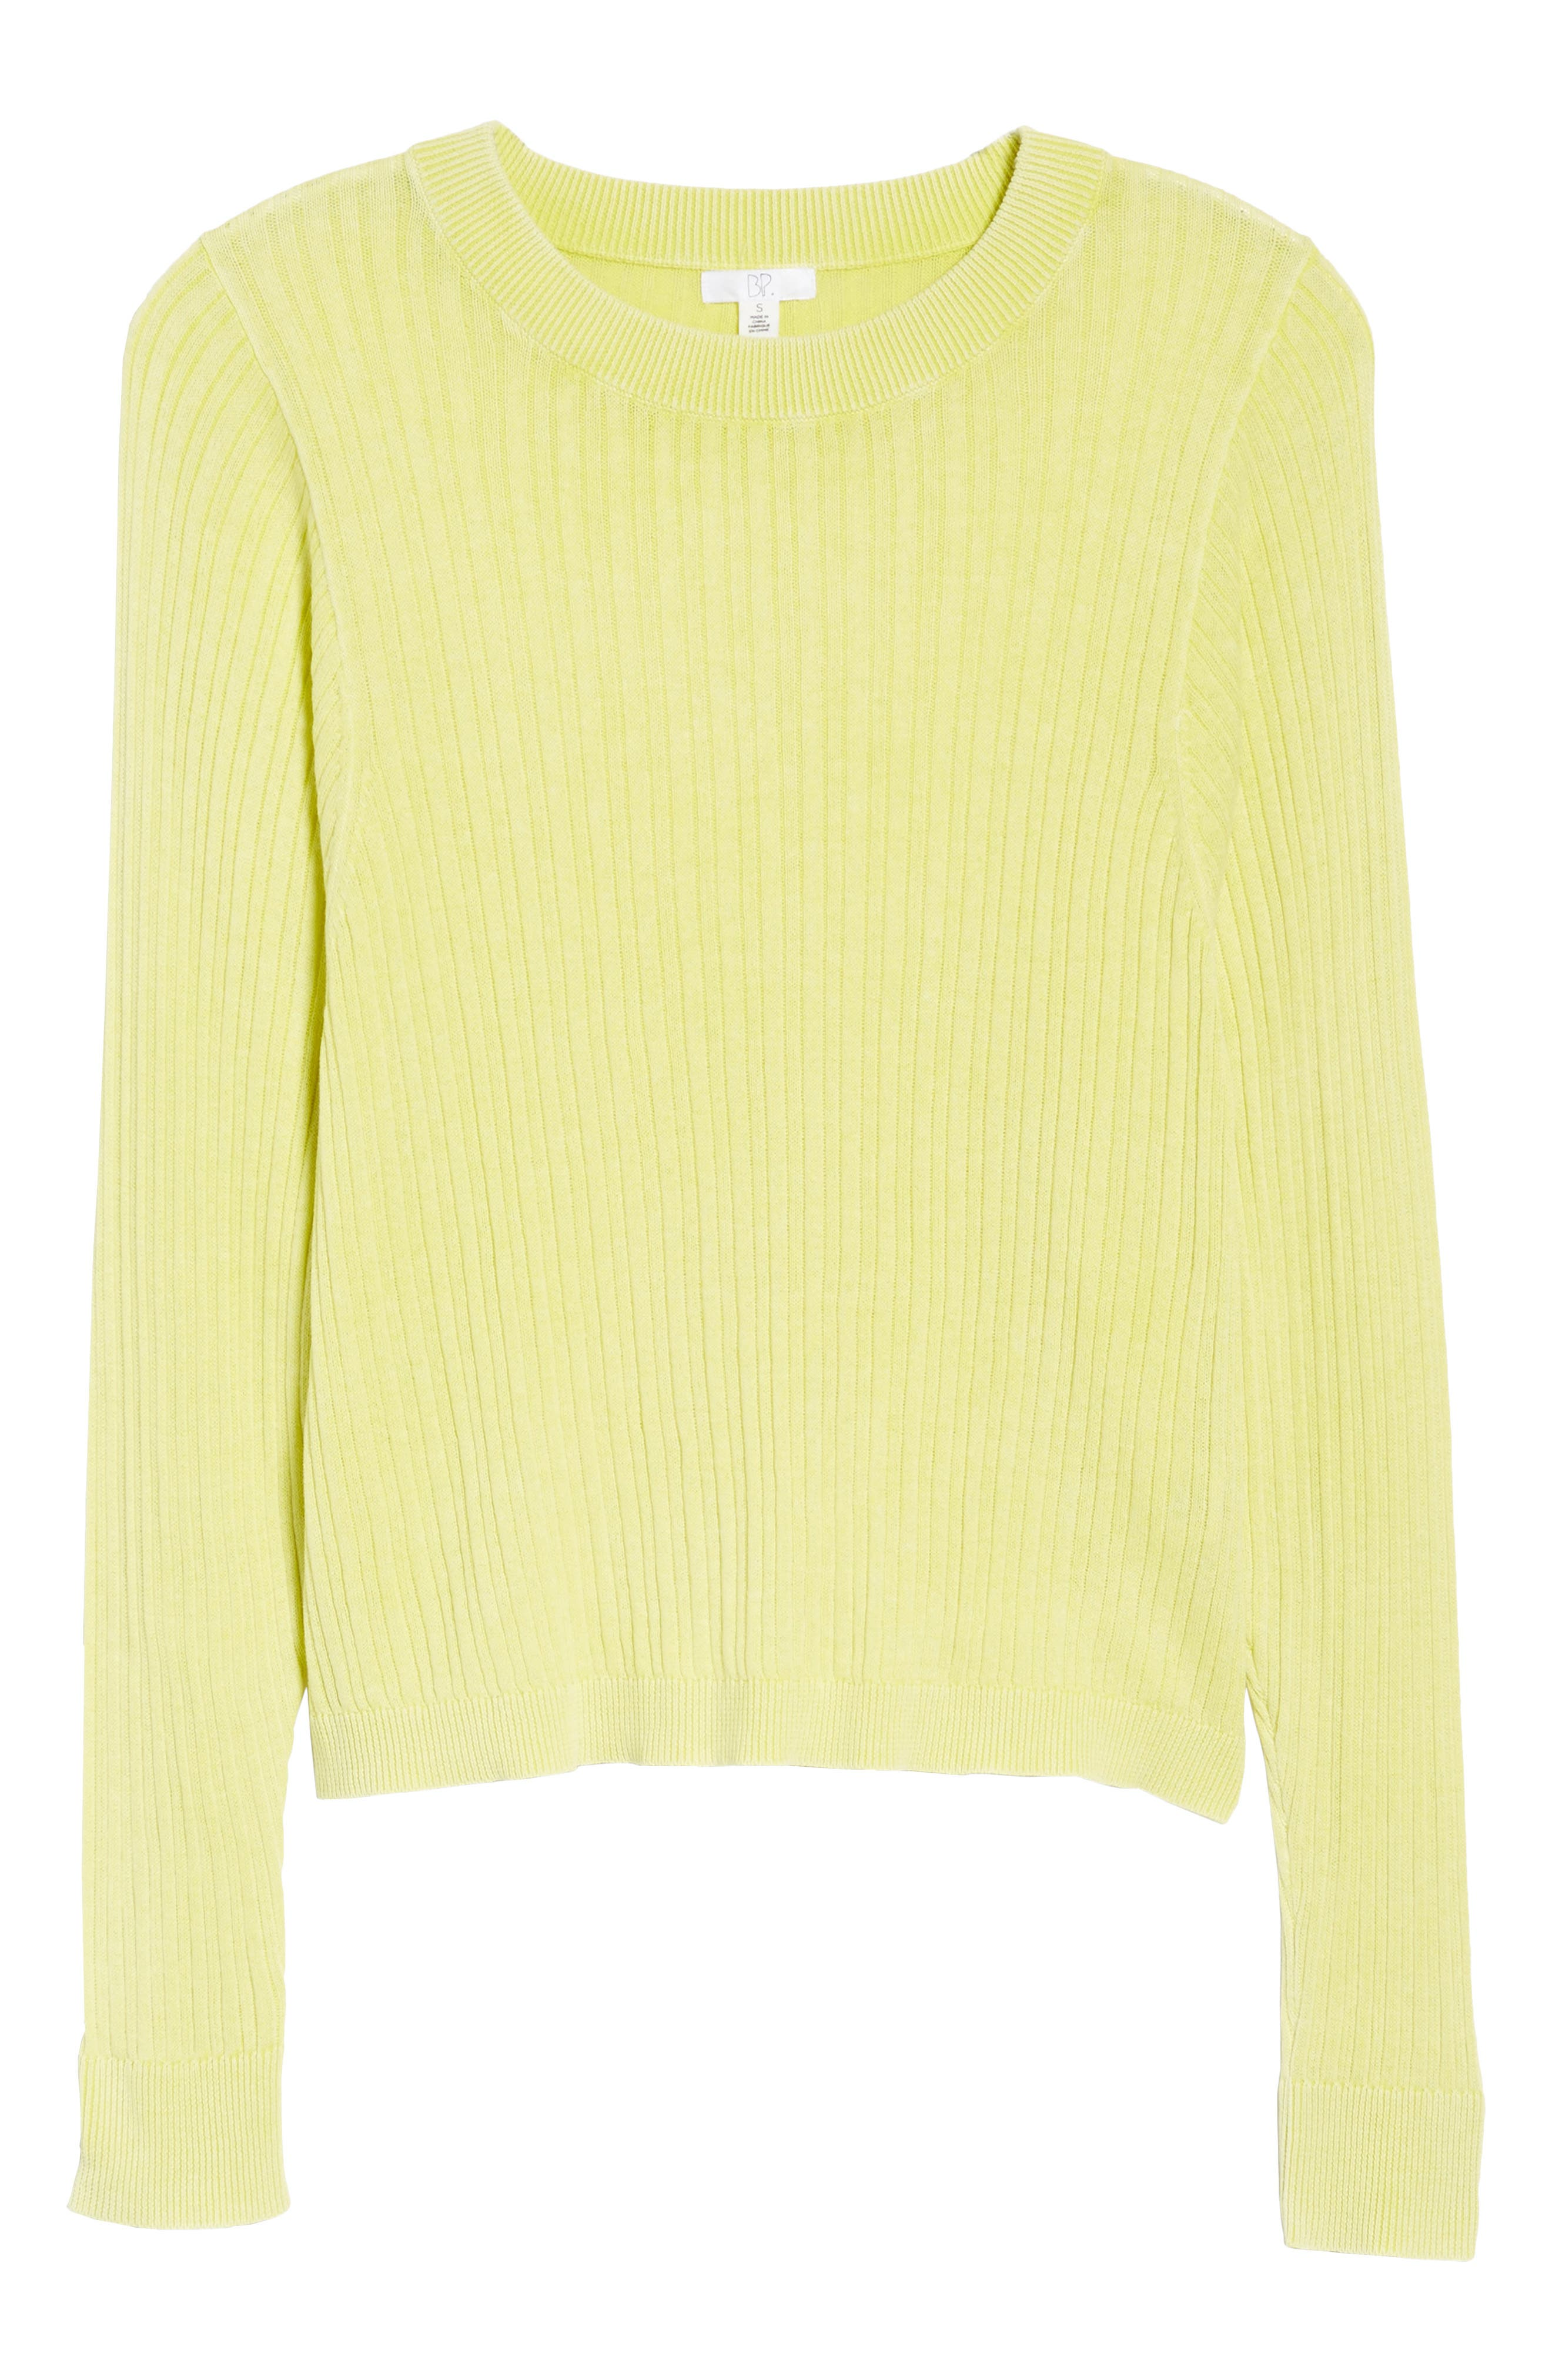 Crewneck Variegated Rib-Knit Sweater,                             Alternate thumbnail 6, color,                             Green Sulphur